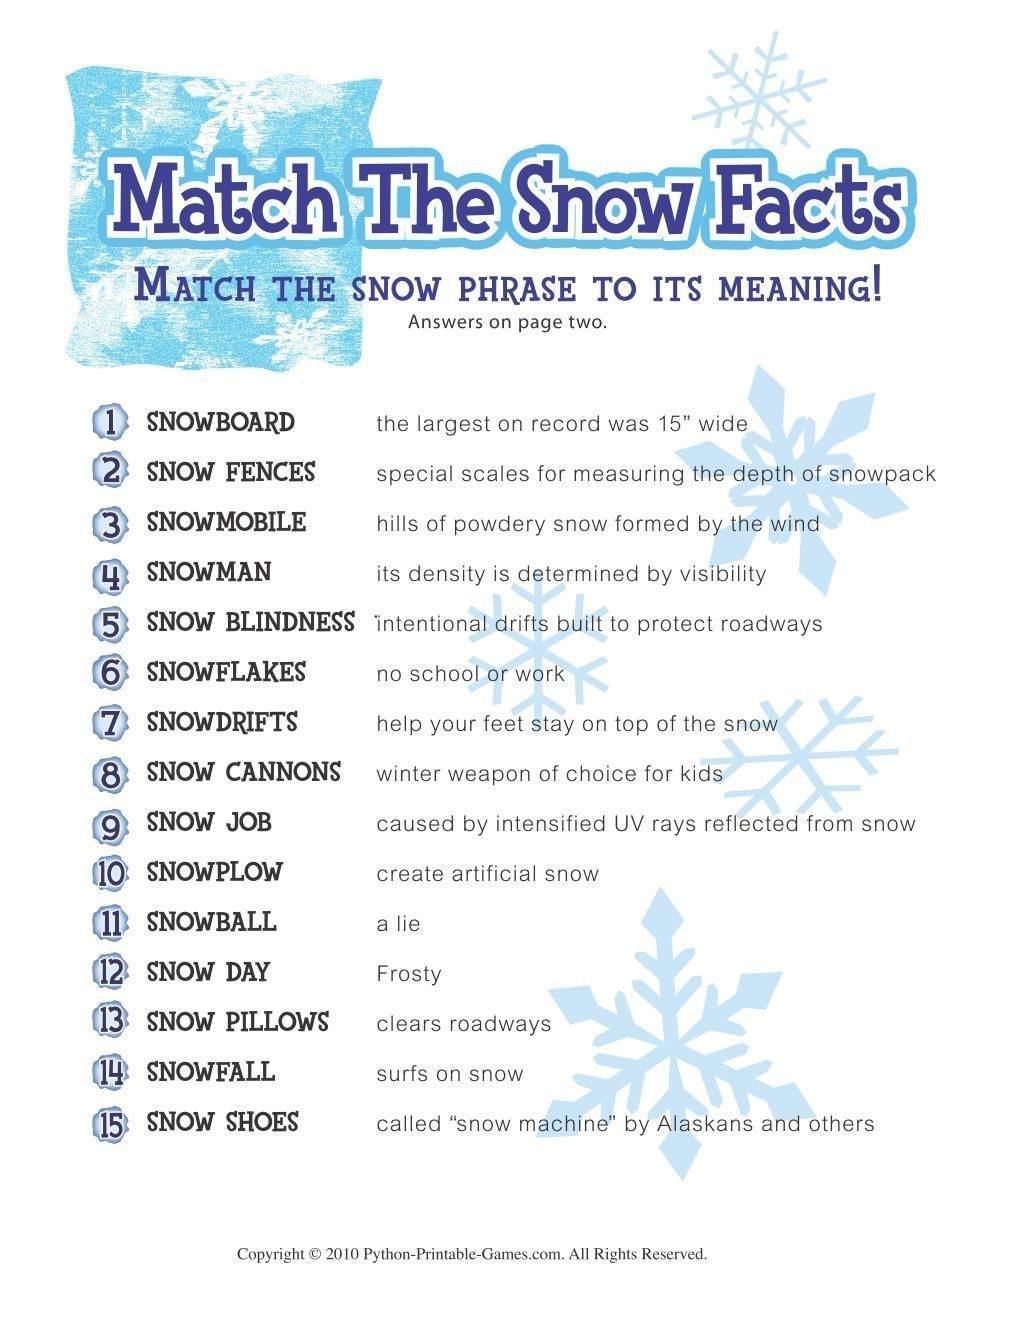 Free Printable Winter Game Match The Snow Facts Download | Winter - Free Printable Games For Adults